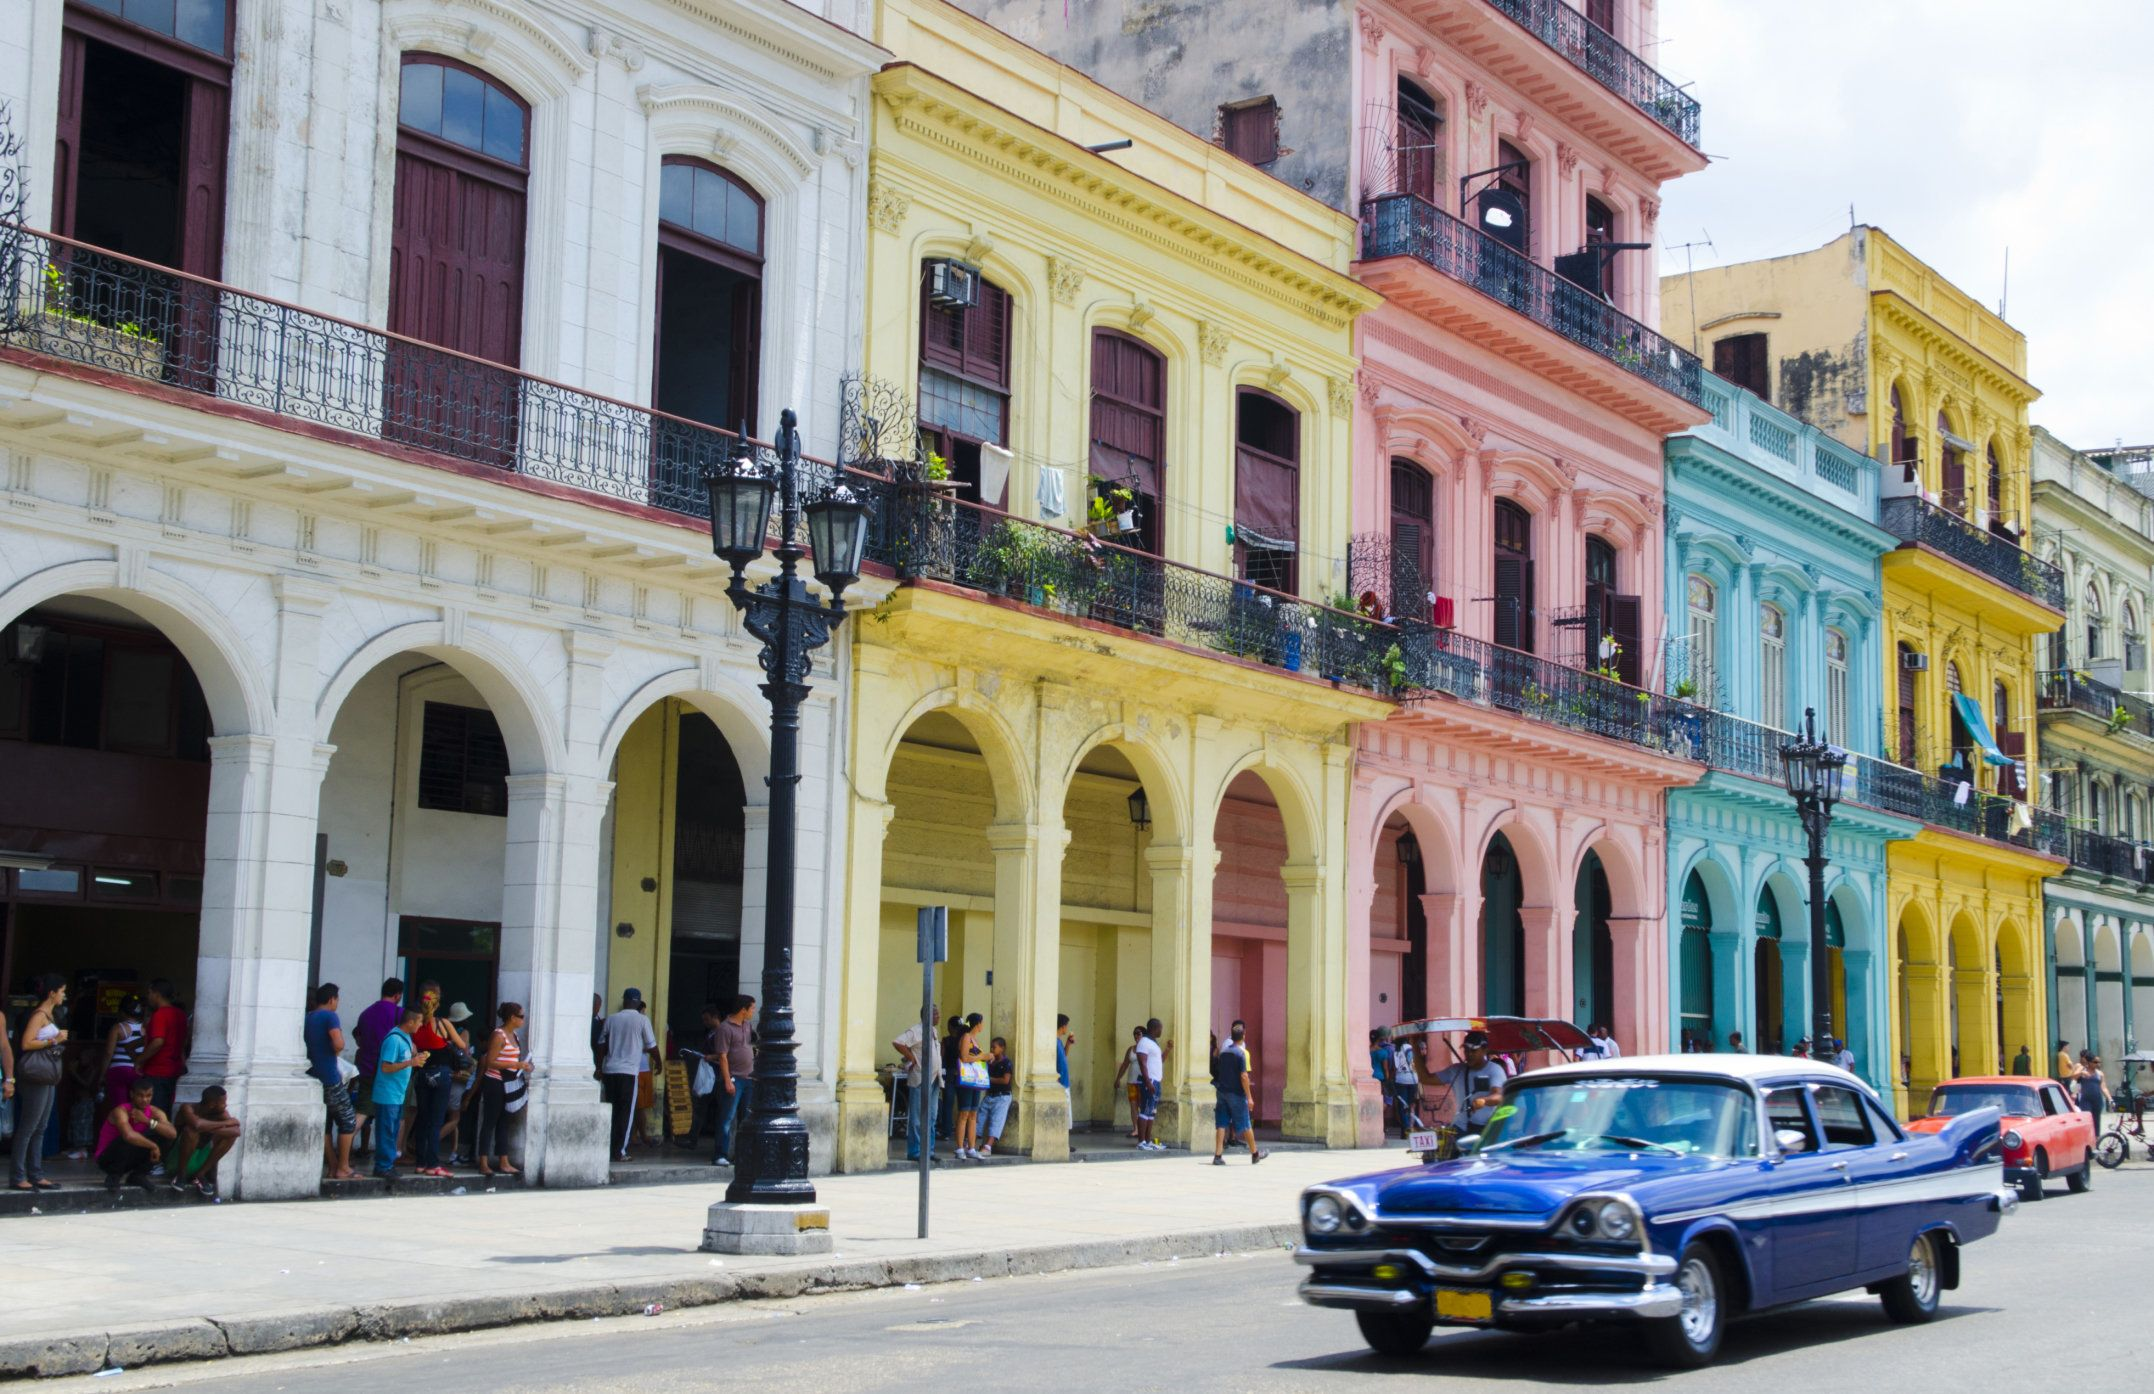 A car passes by pastel-colored buildings in Havana, Cuba.